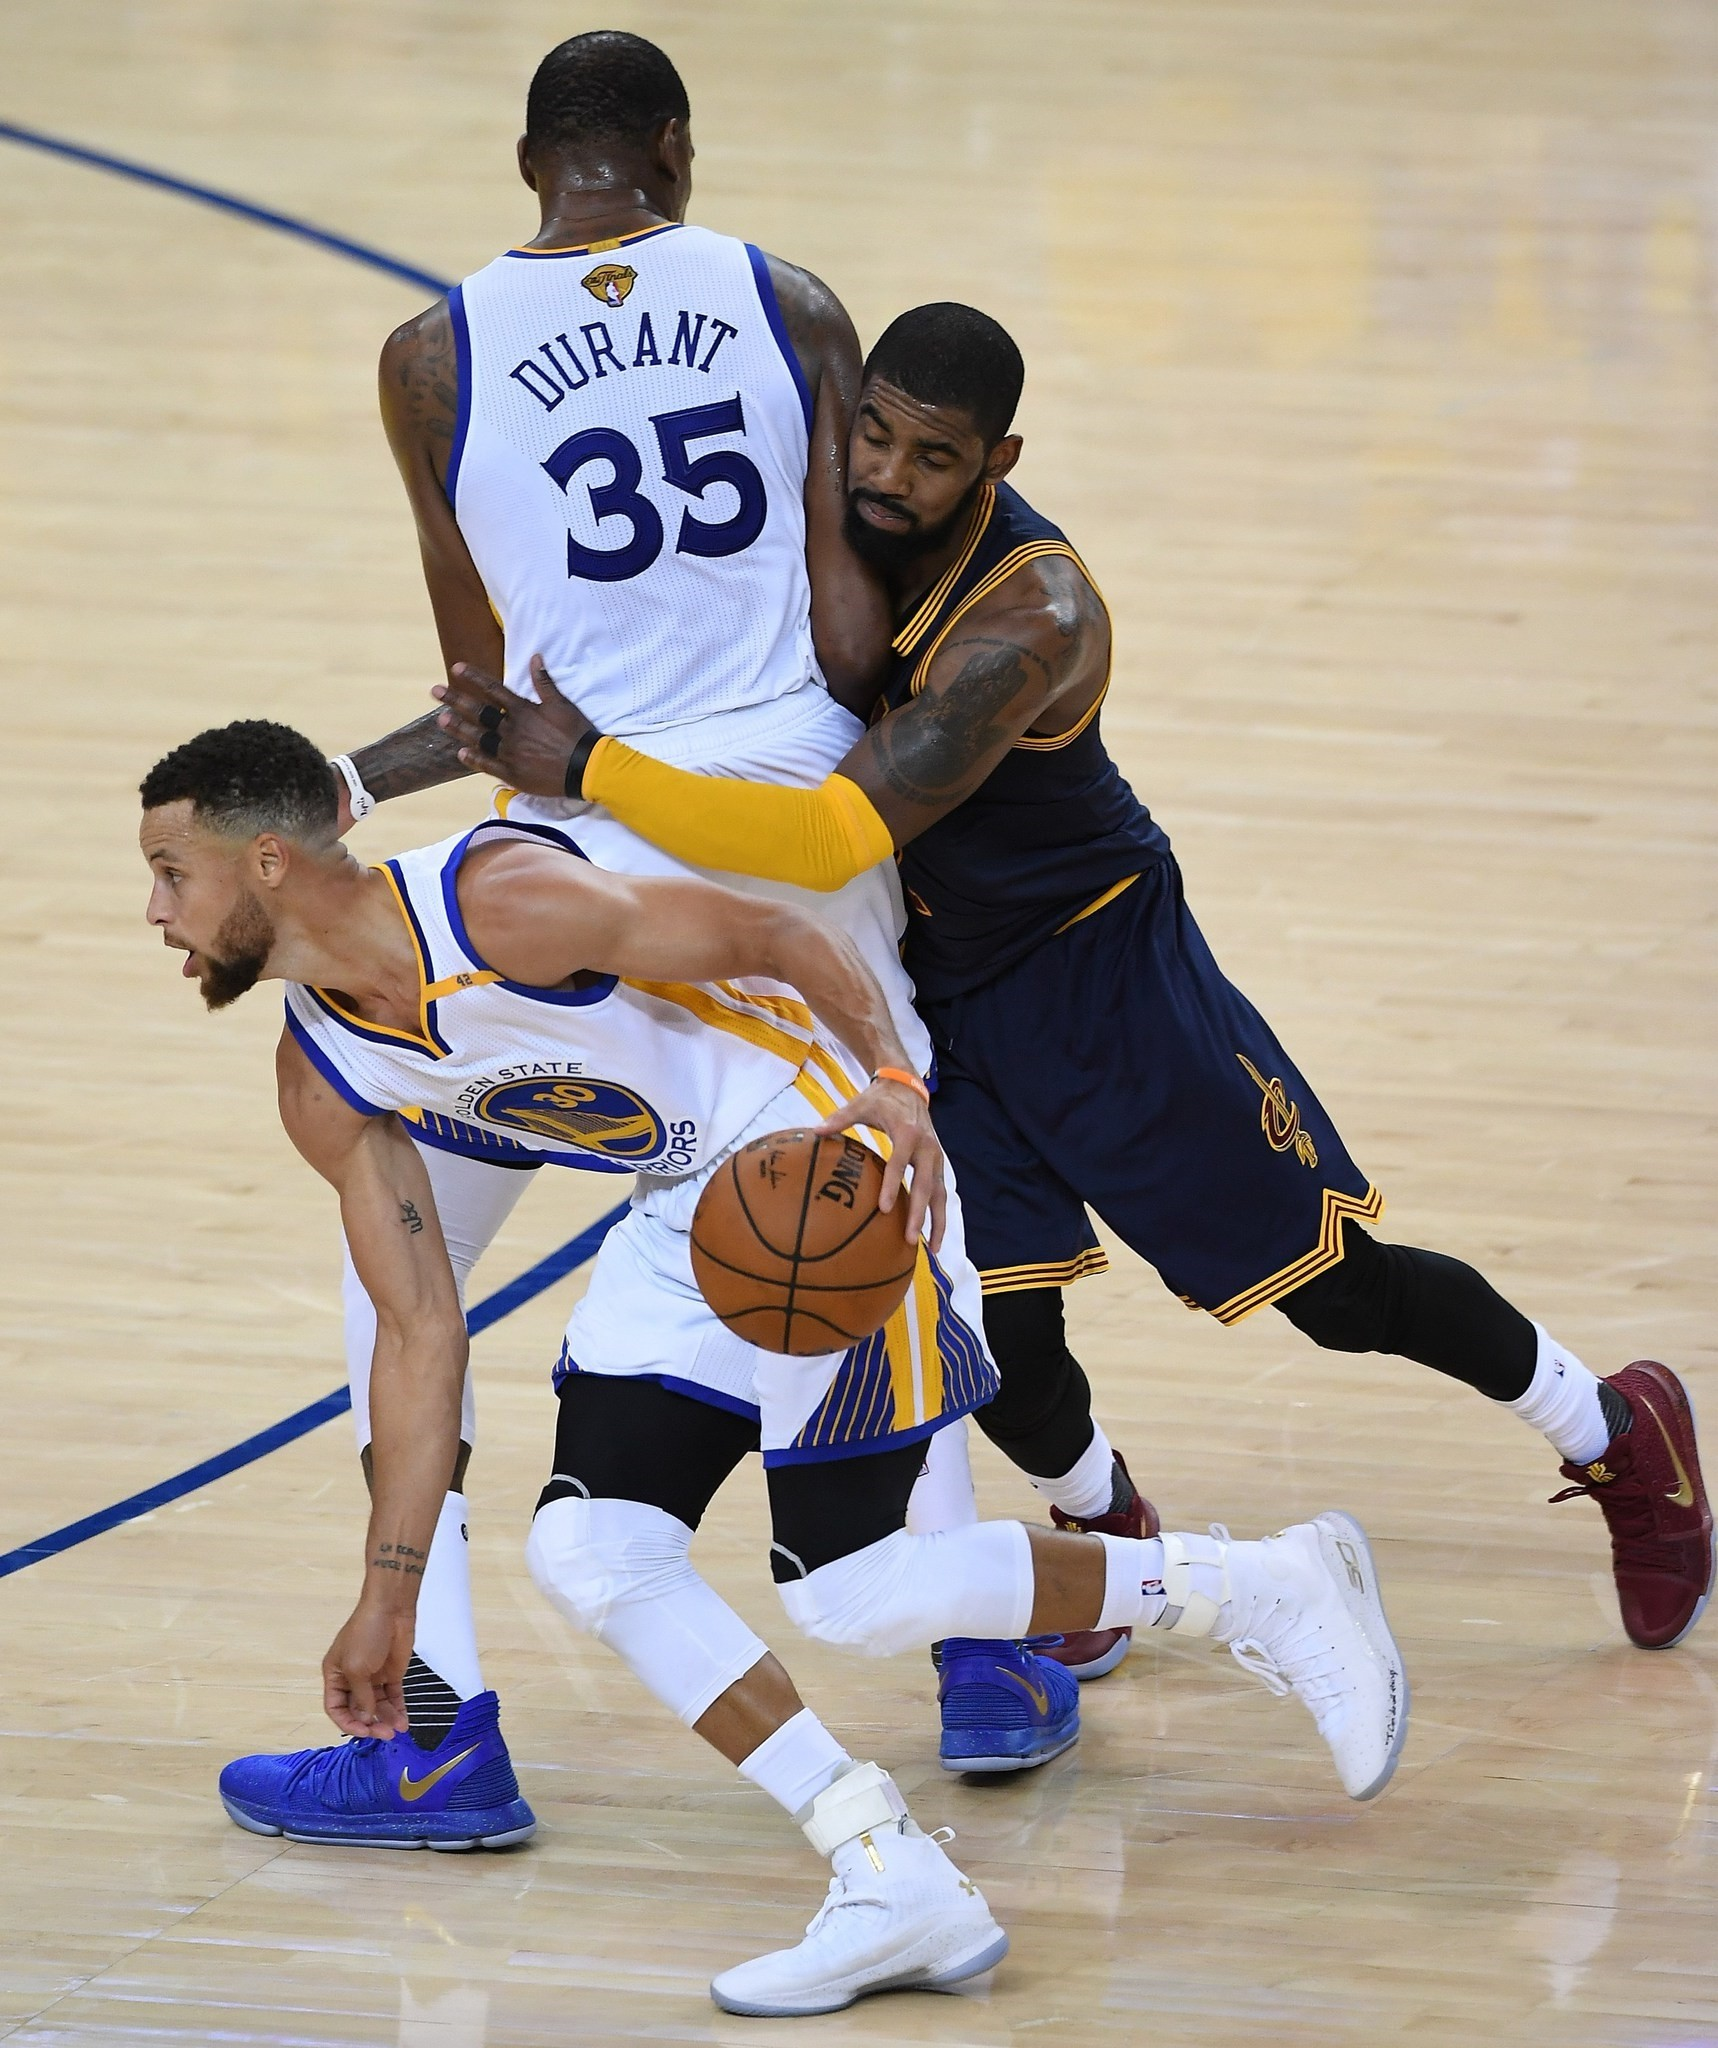 Kevin Durant #35 of the Golden State Warriors sets a pick on Kyrie Irving #2 of the Cleveland Cavaliers as teammate Stephen Curry #30 drives to the basket during the 2017 NBA Finals.